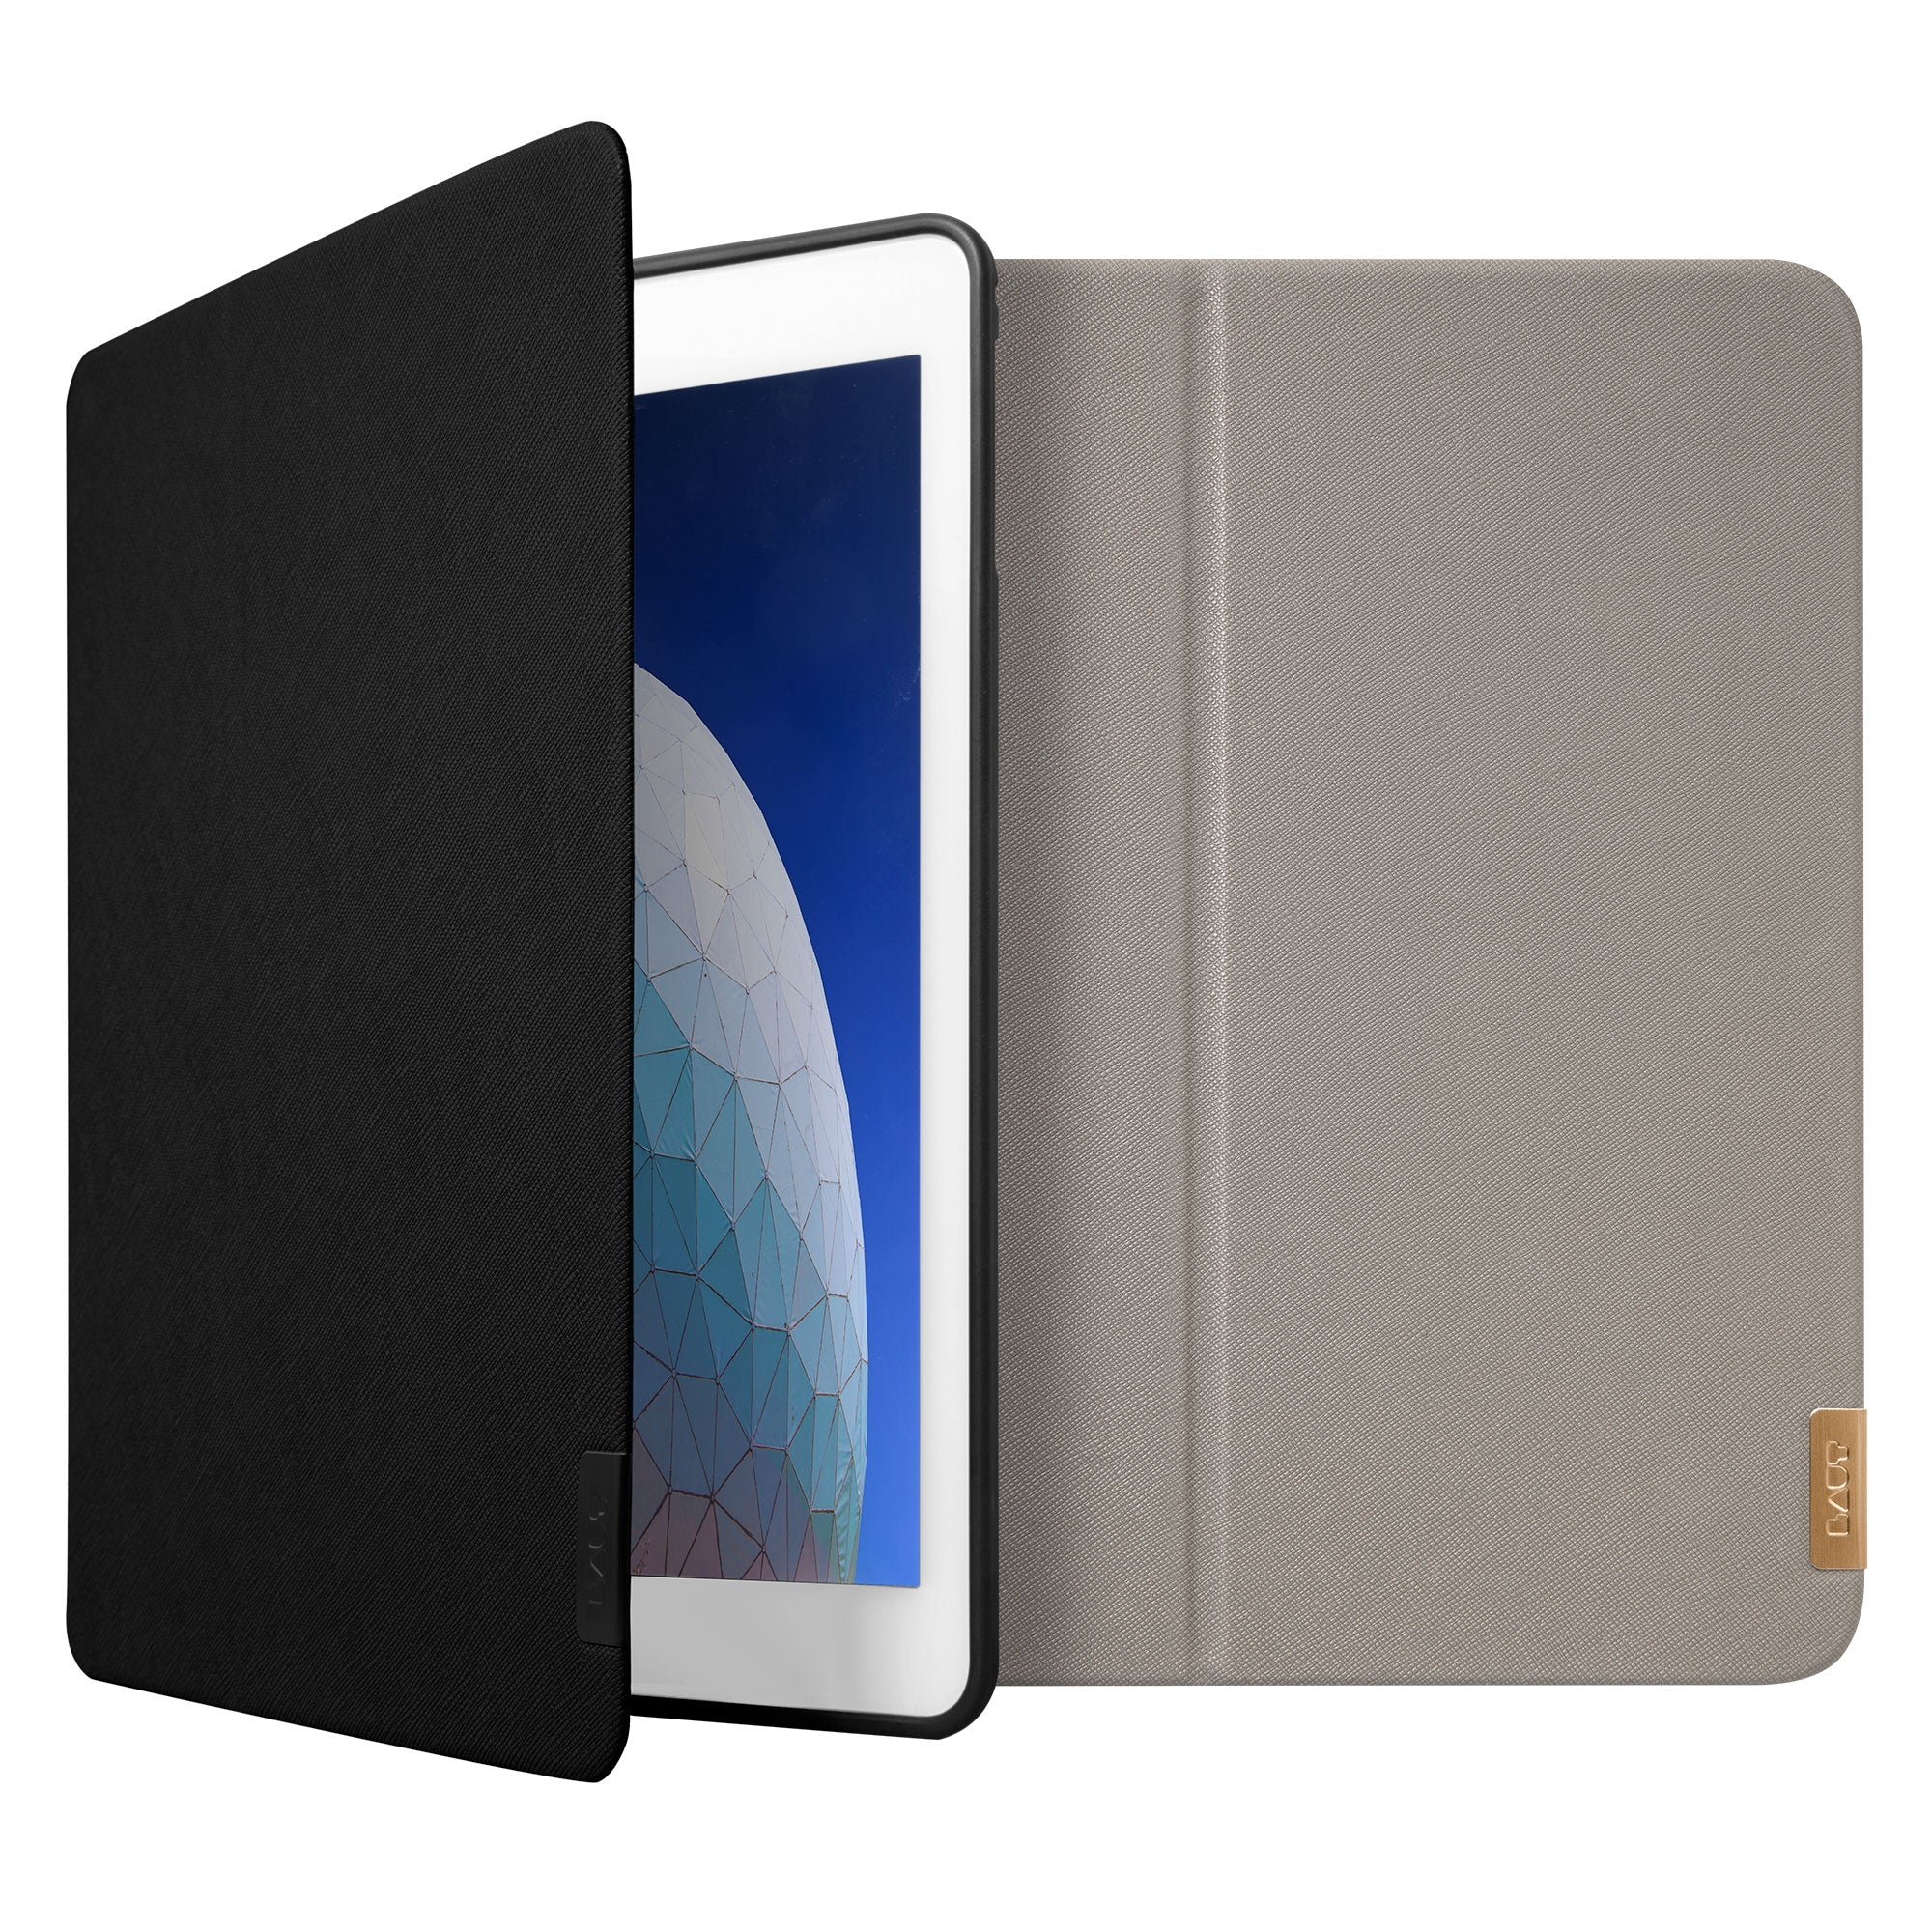 PRESTIGE Folio case for iPad 10.2-inch (2020 / 2019)